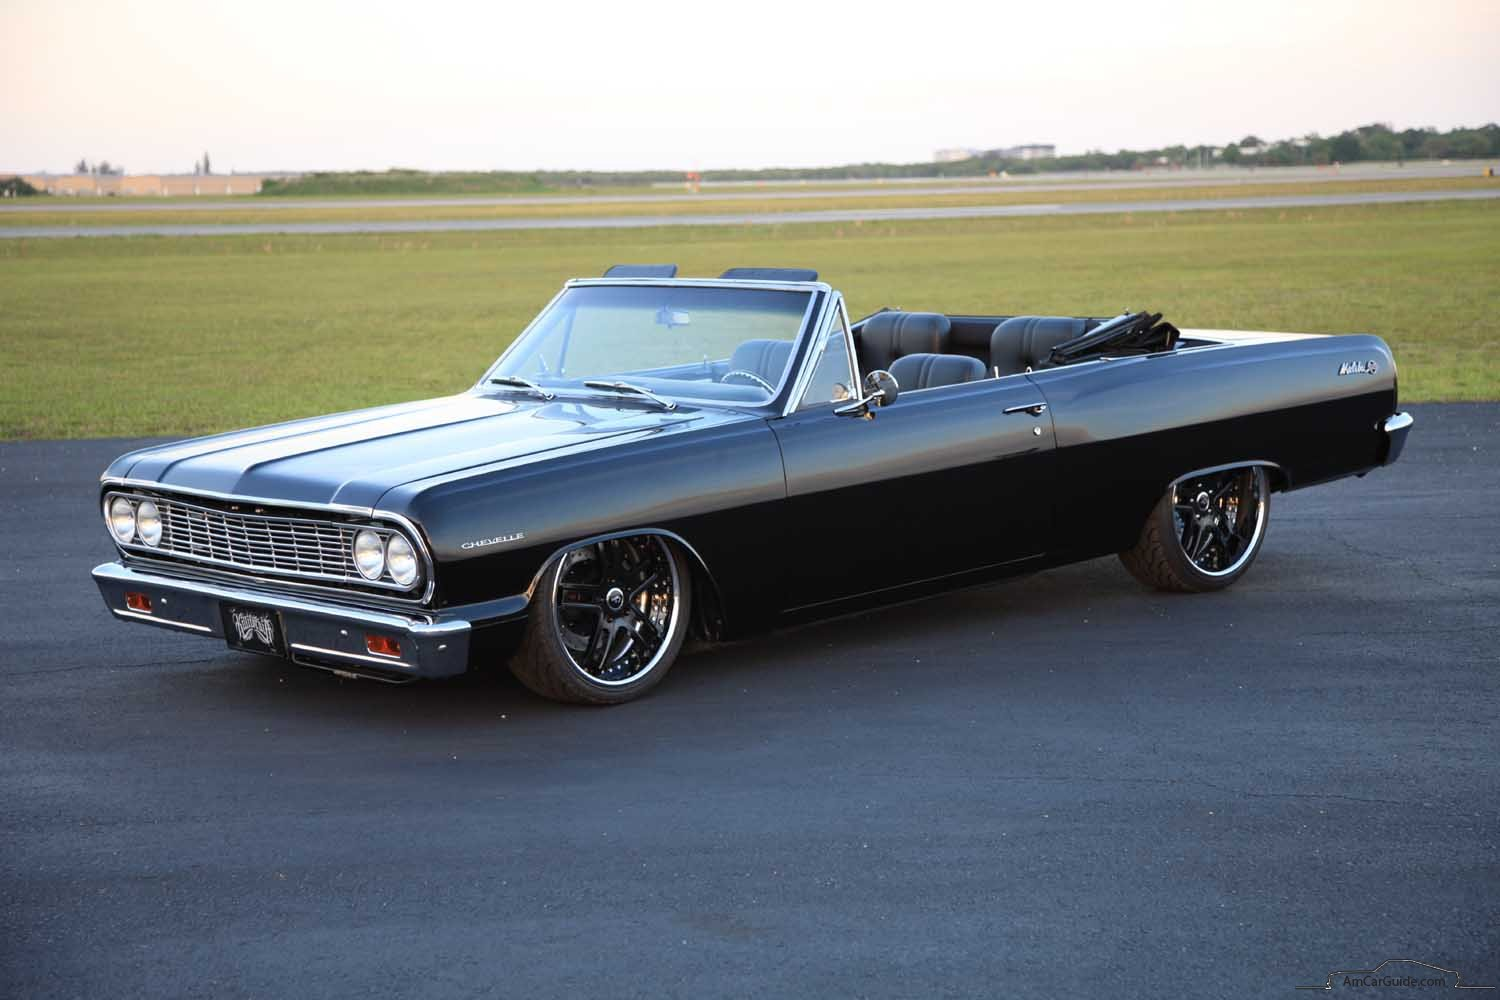 Chevrolet Chevelle: 1964-1972, 1st generation | AmcarGuide ...